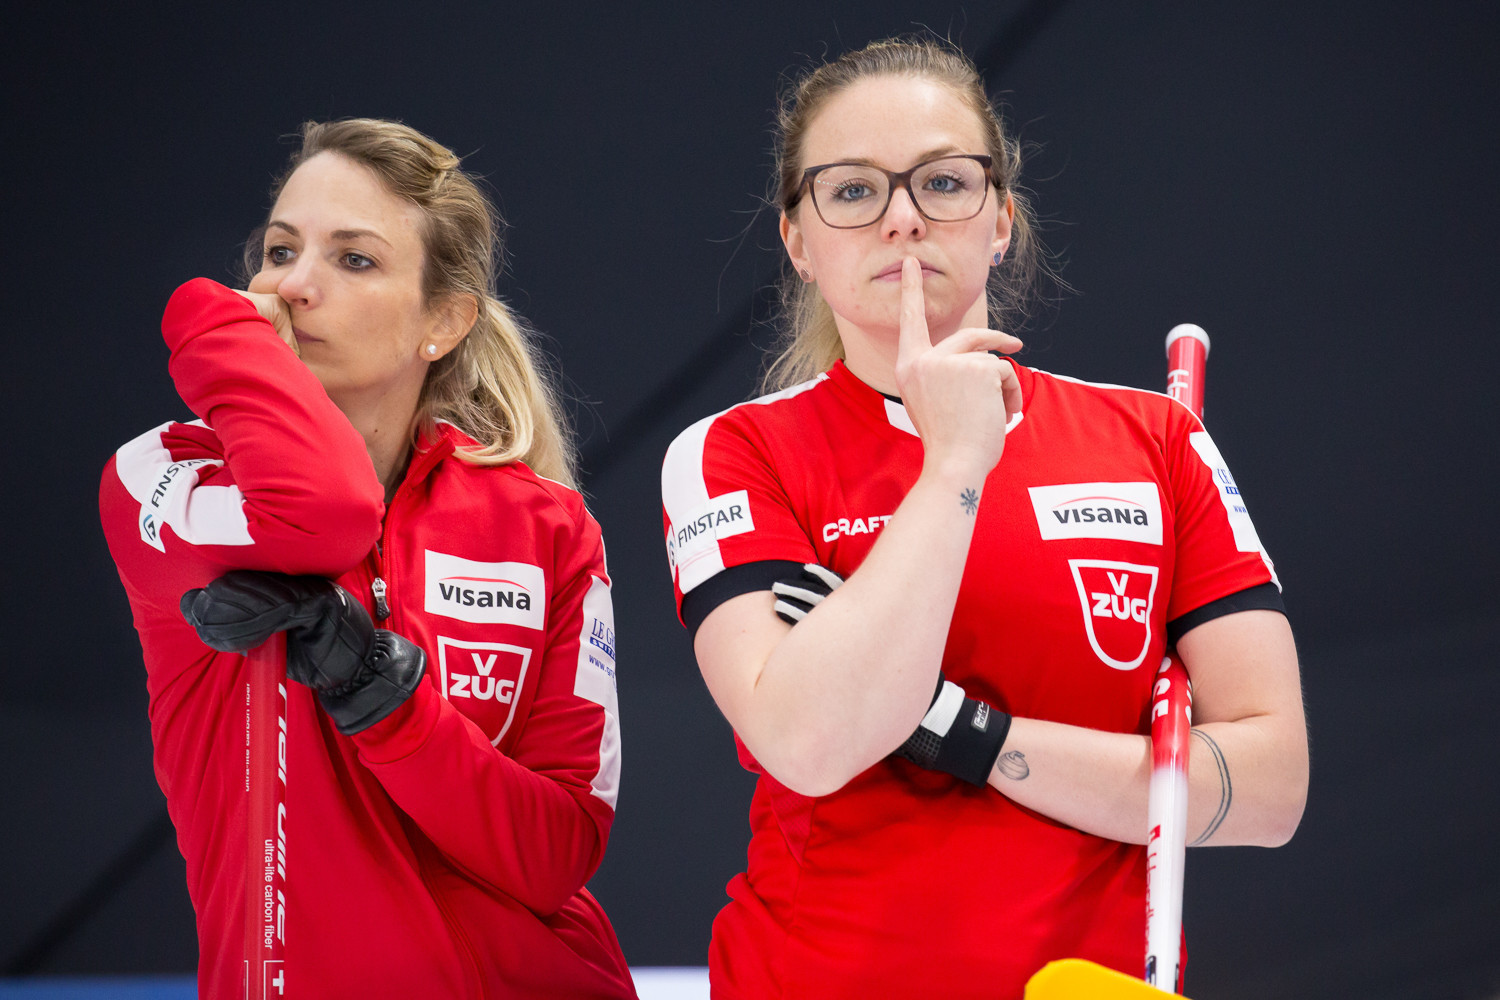 Switzerland and Sweden seal Beijing 2022 spots at World Women's Curling Championship